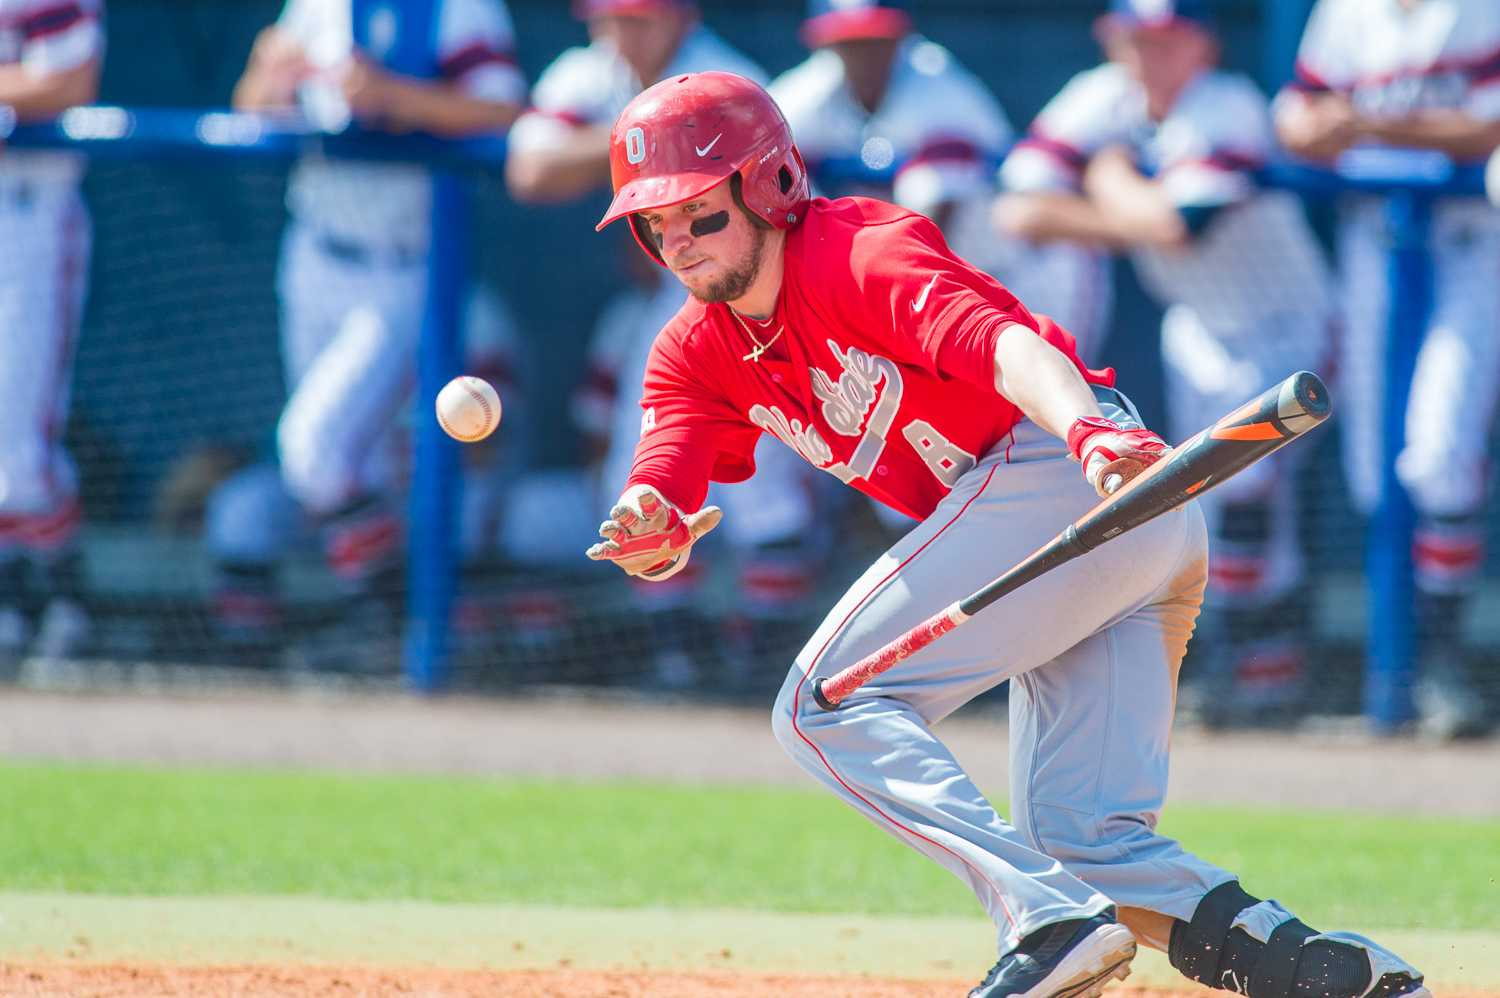 Troy Montgomery (8) of the Ohio State Buckeyes bunts in the eighth inning.  He was thrown out by pitcher Reily Monkman (21).